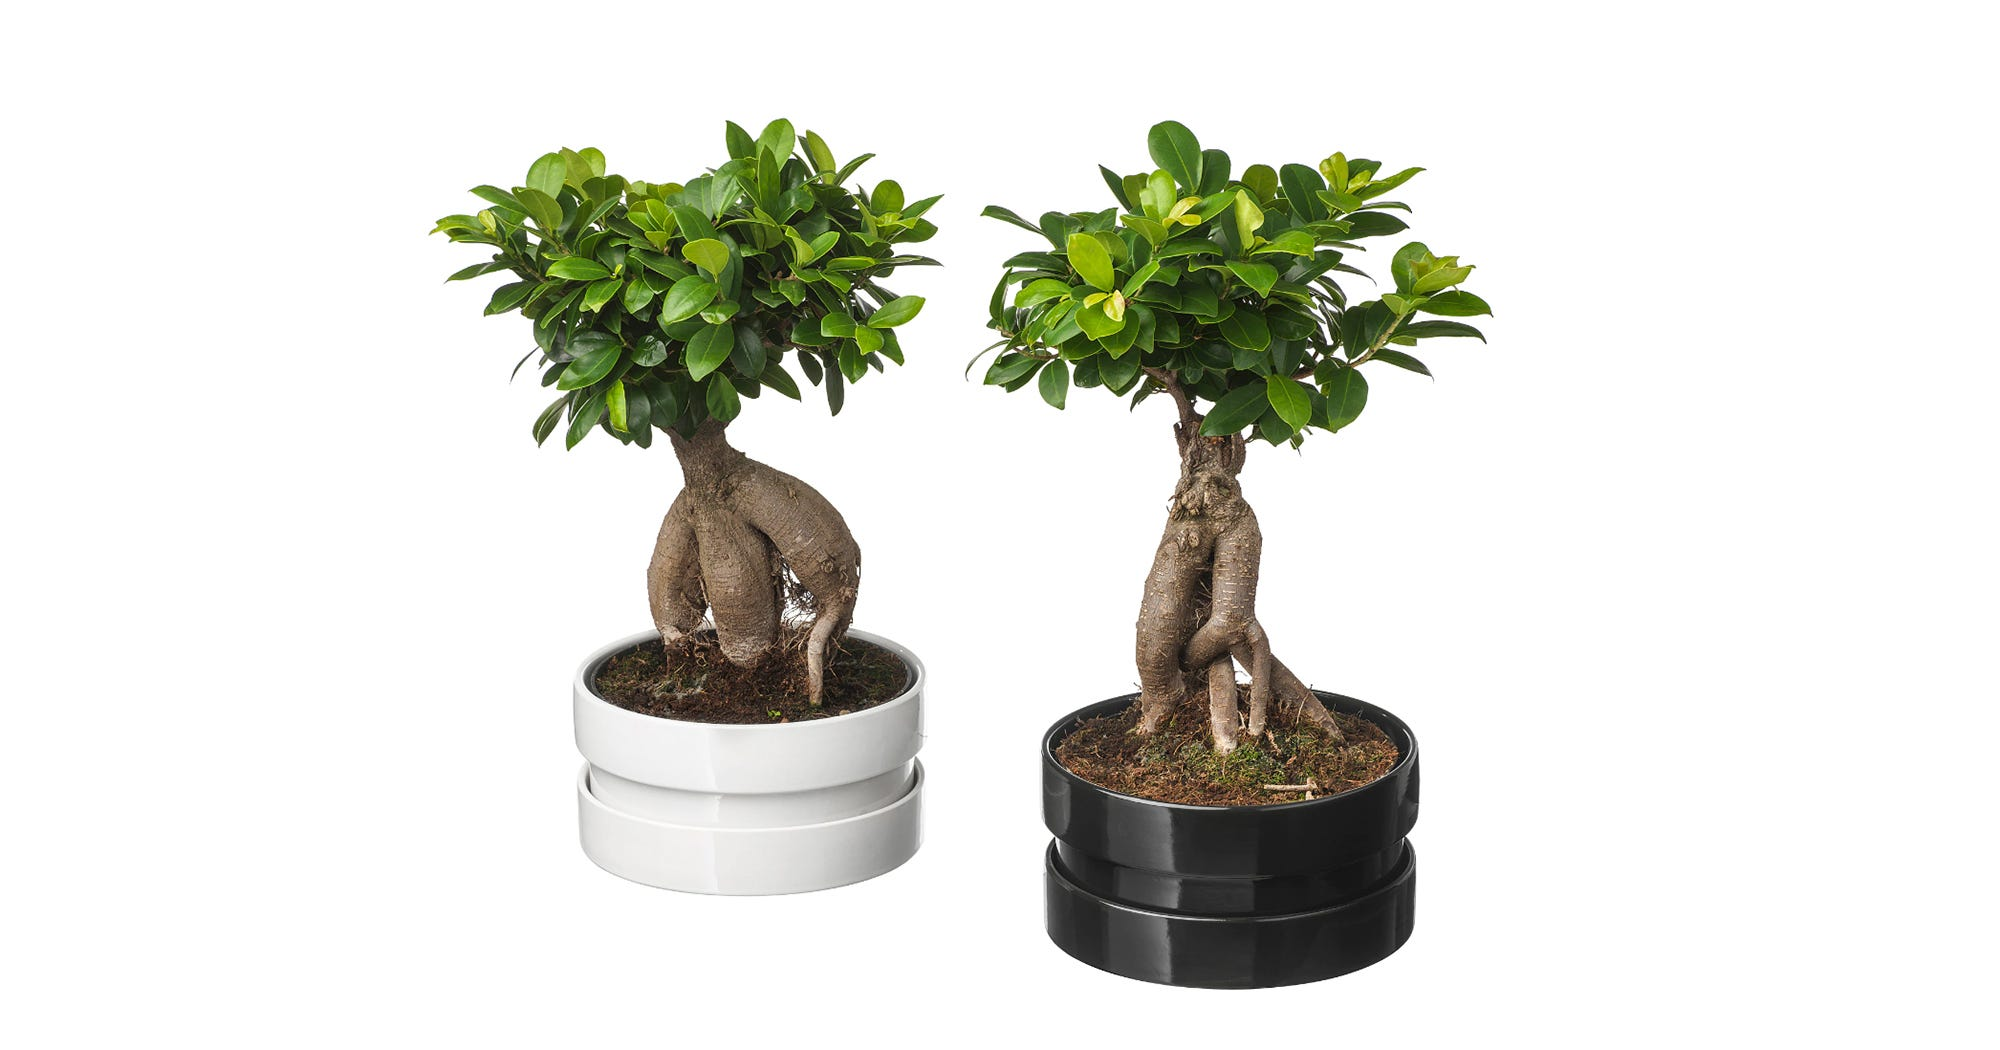 Best Ikea Plants Succulents Pots Planter Stands